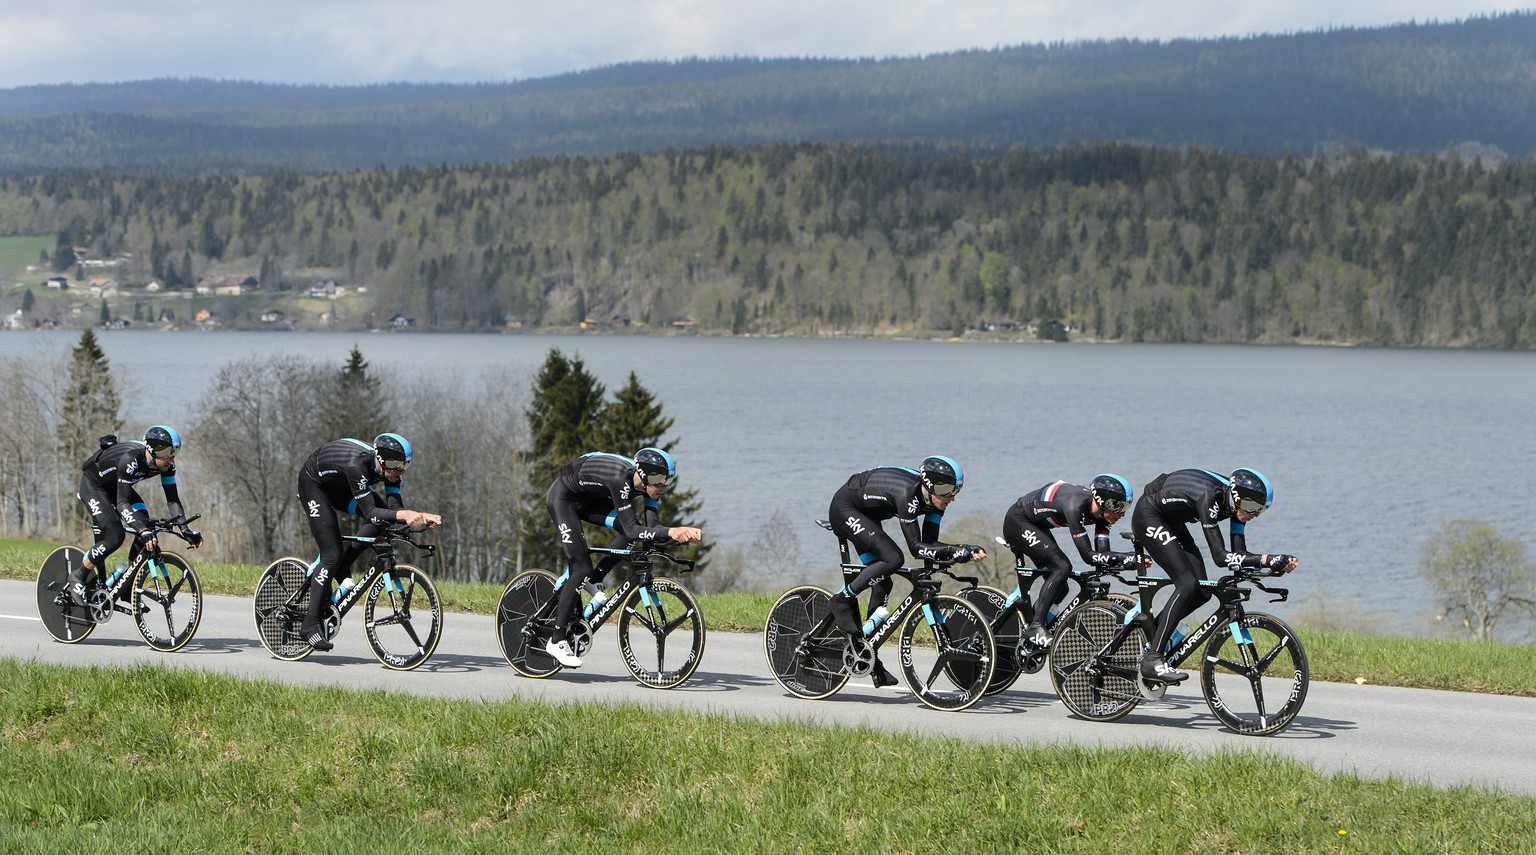 epa04722622 Team Sky Procycling with British Christopher Froome (R) in action during a team time trial training session on the eve of the 69th Tour de Romandie UCI ProTour cycling race, near Le Pont, Switzerland, 27 April 2015.  EPA/JEAN-CHRISTOPHE BOTT